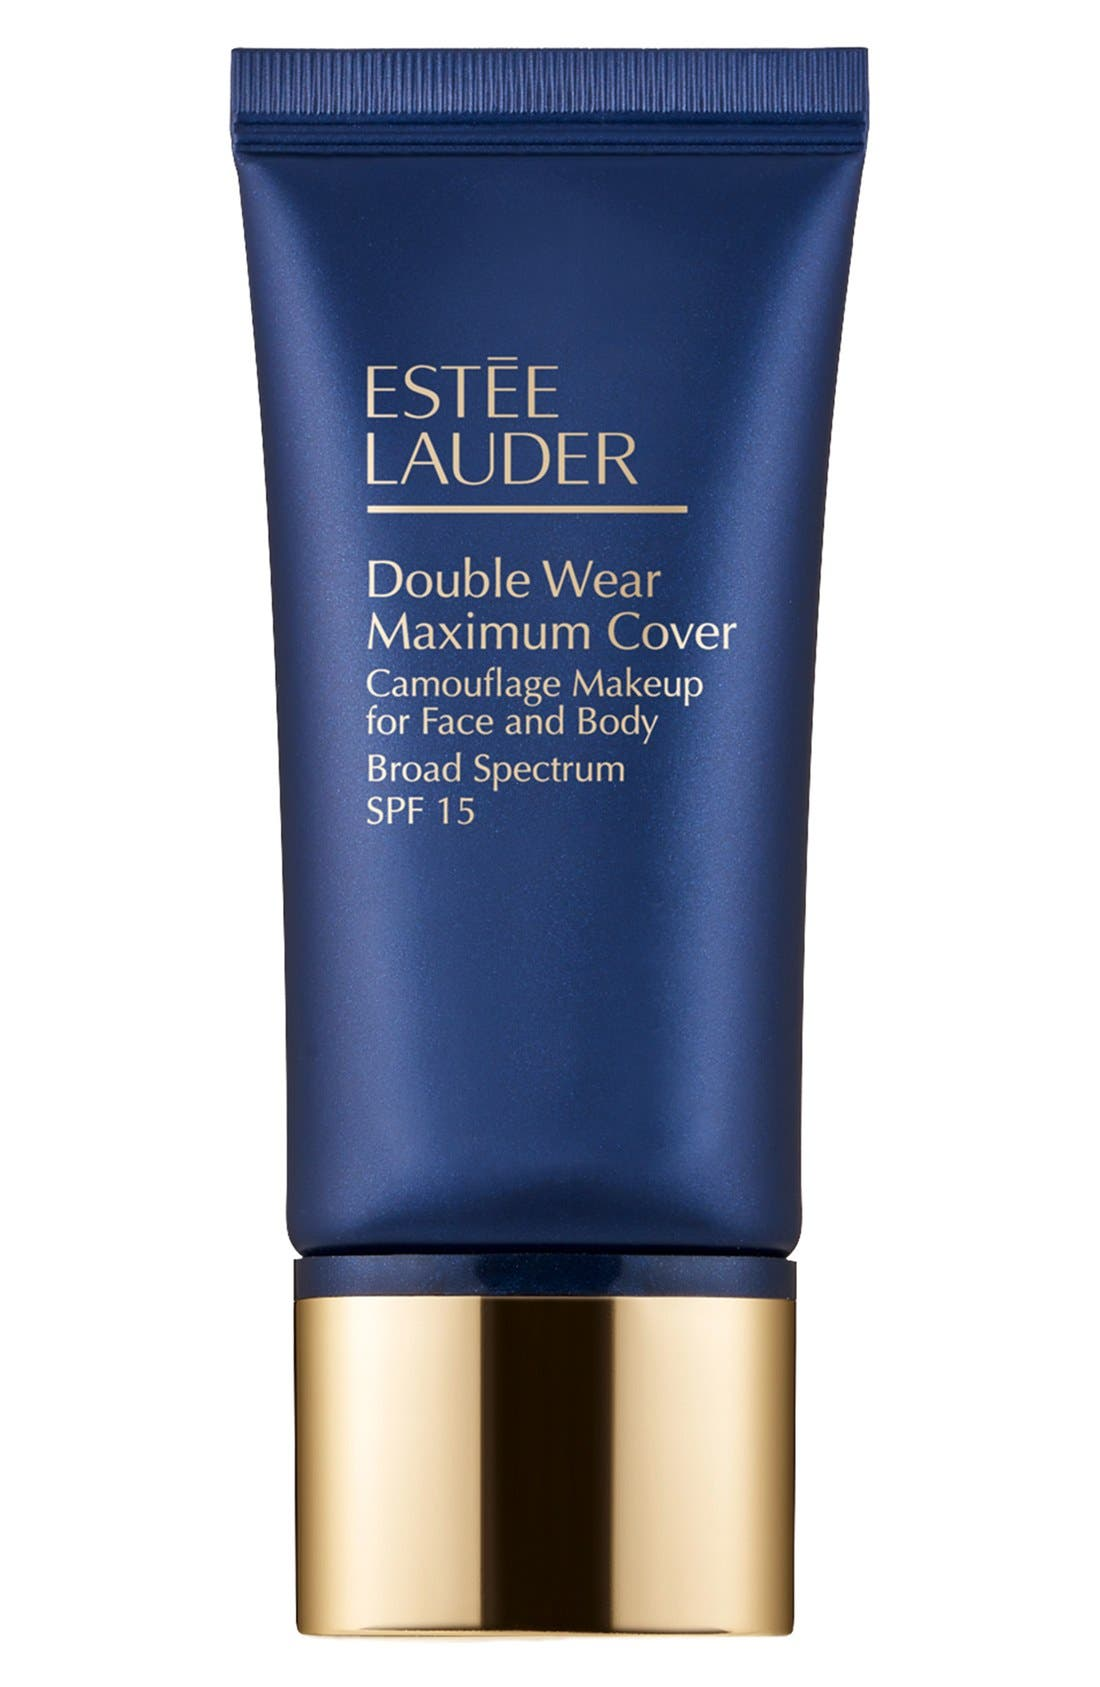 Estée Lauder Double Wear Maximum Cover Camouflage Makeup for Face and Body SPF 15